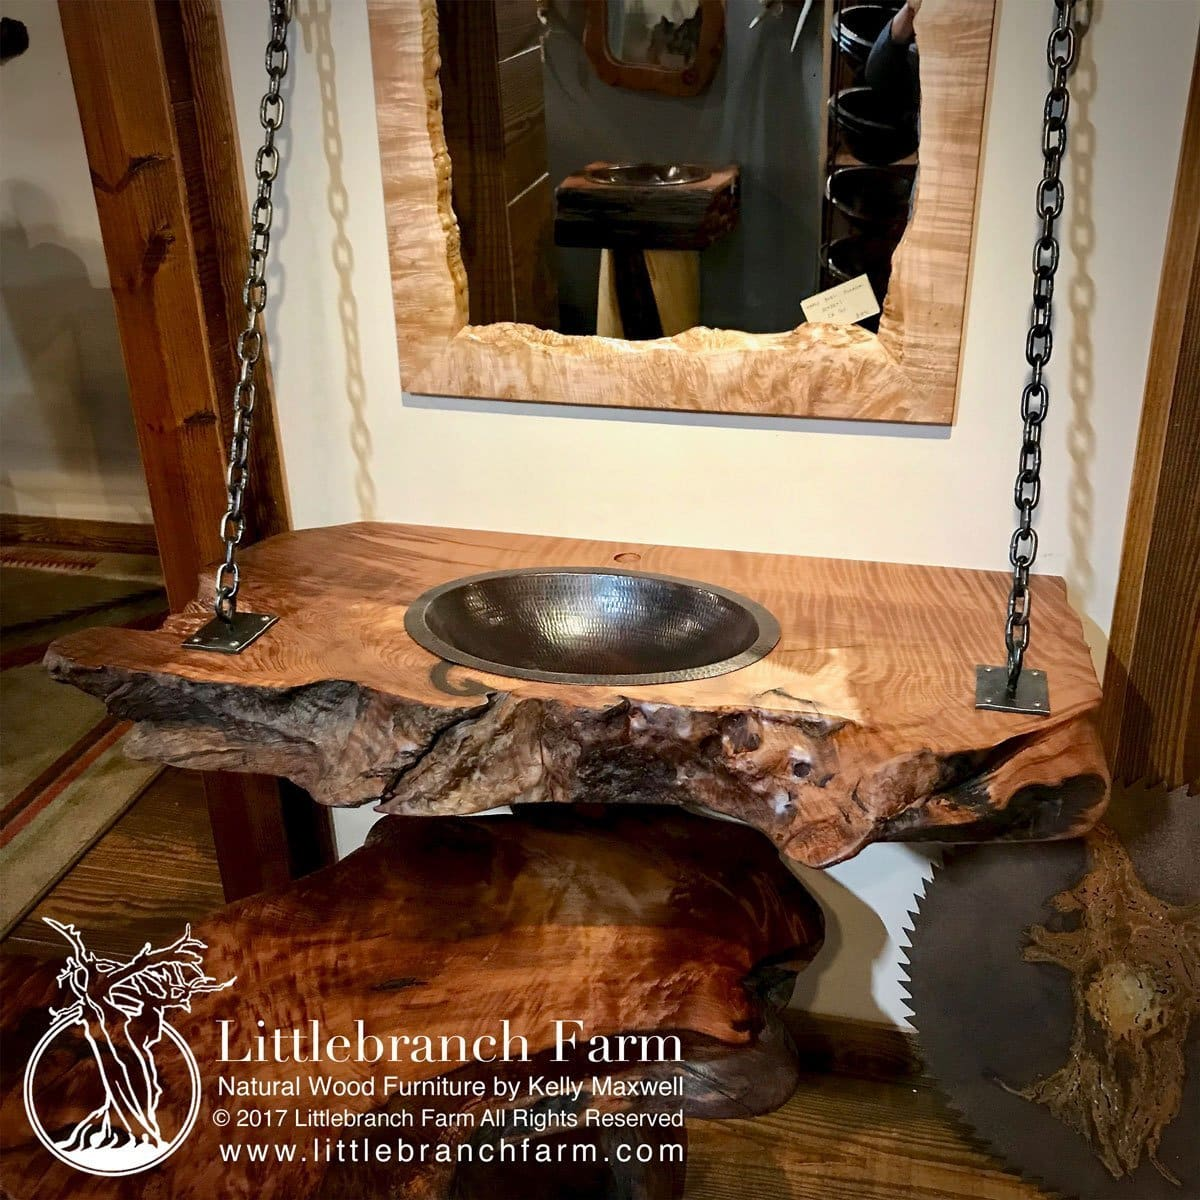 Hanging Wood Slab Bathroom Vanity  Littlebranch Farm